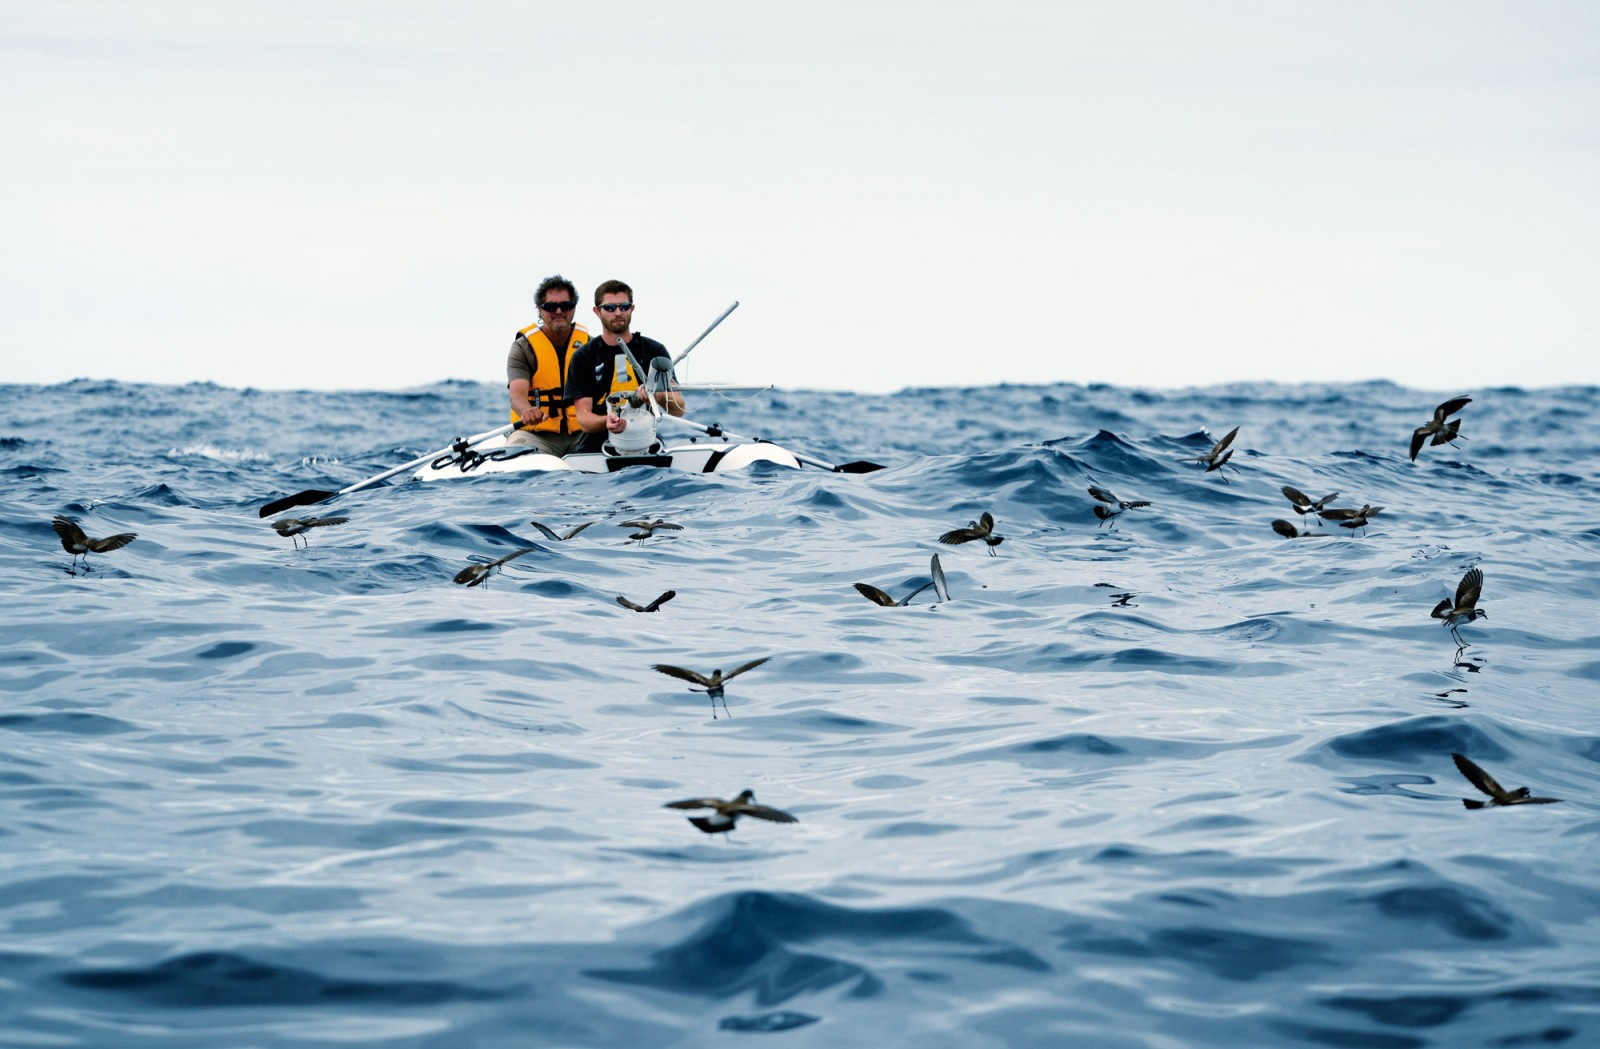 Storm petrels gather astern of the writer Chris Gaskin and Neil Fitzgerald (with the net gun) in the project's inflatable dinghy. Most are white-faced storm petrels, but Fitzgerald has the bird with the white rump (toward the right side of the picture) in his sights—a New Zealand storm petrel.